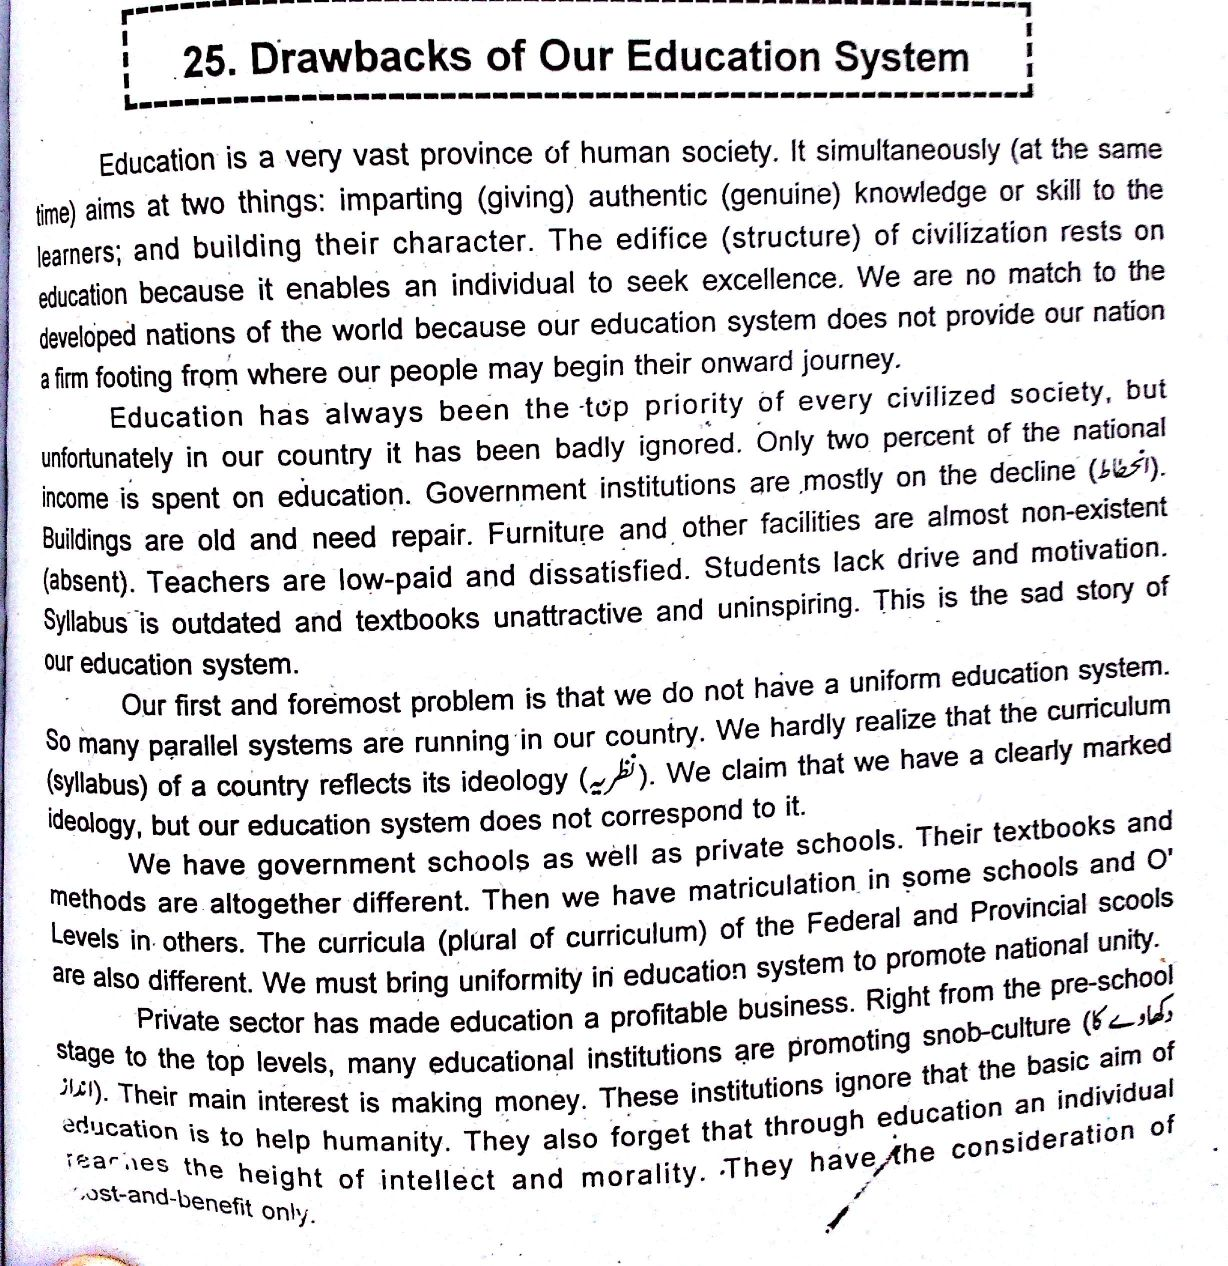 drawbacks of our education system essay in english for primary to disadvantages of n education system disadvantages of education system in shortcomings of present